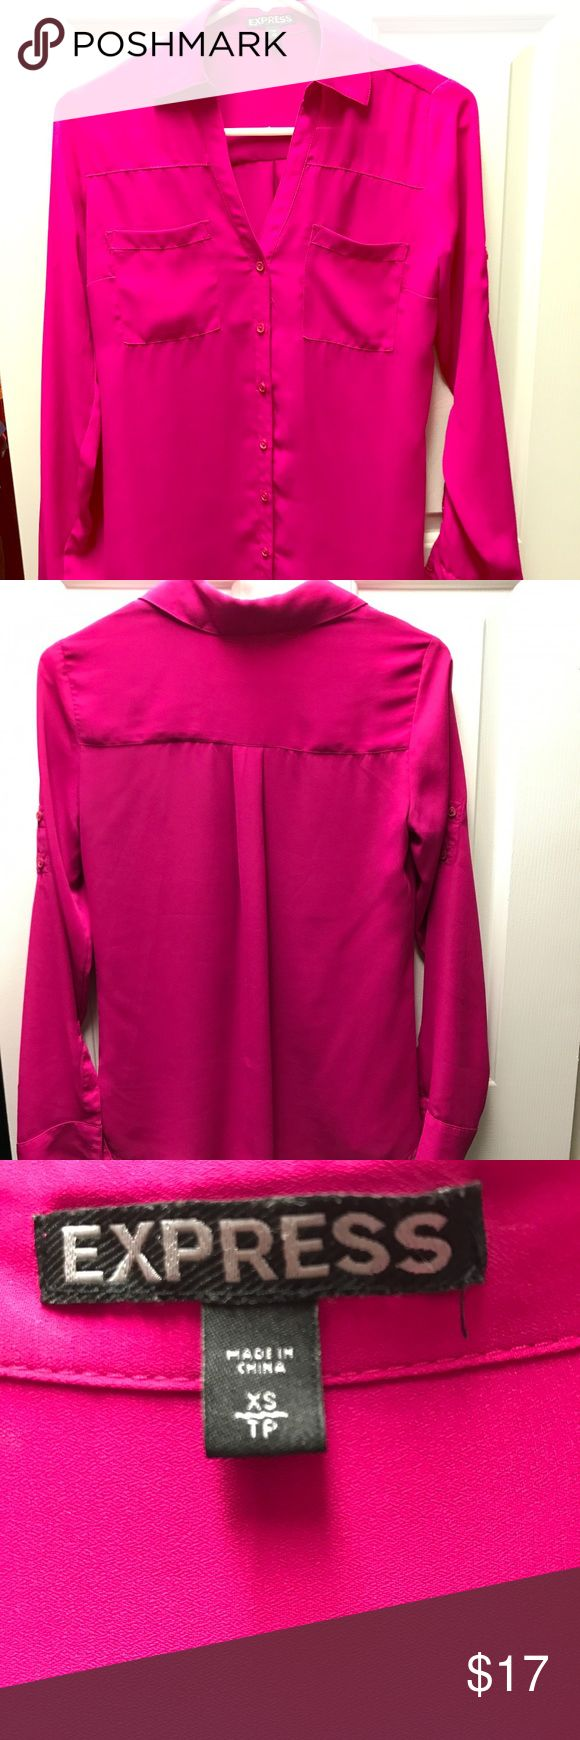 Express Hot Pink Blouse Size XS Express brand blouse. Hot pink. Size XS. Worn less than a handful of times. In great condition. Express Tops Blouses